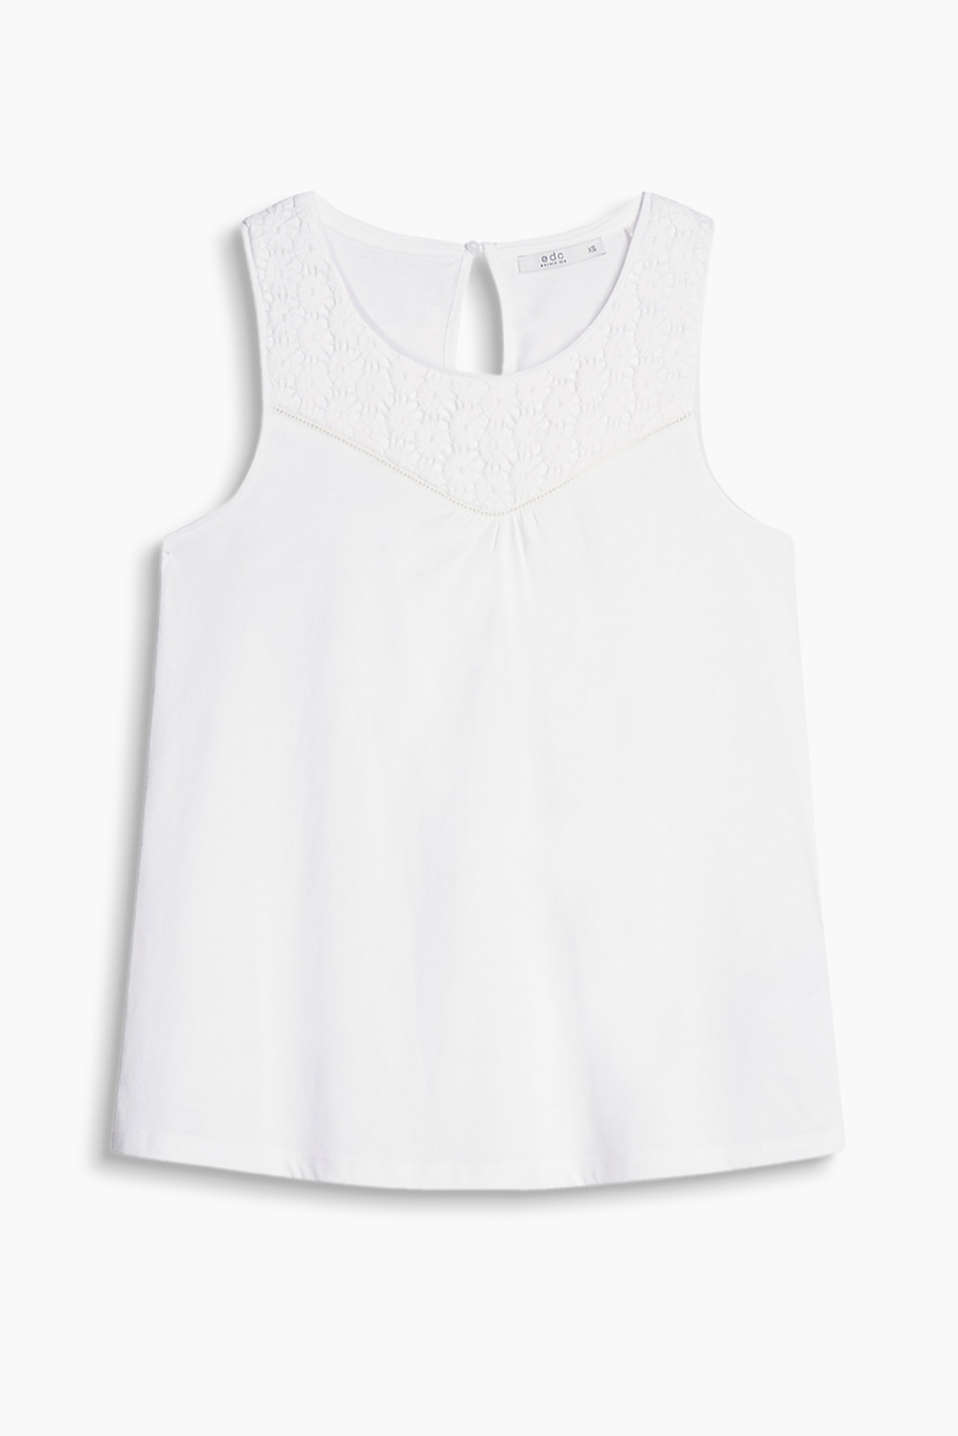 Flared jersey top with a lace panel, 100% cotton